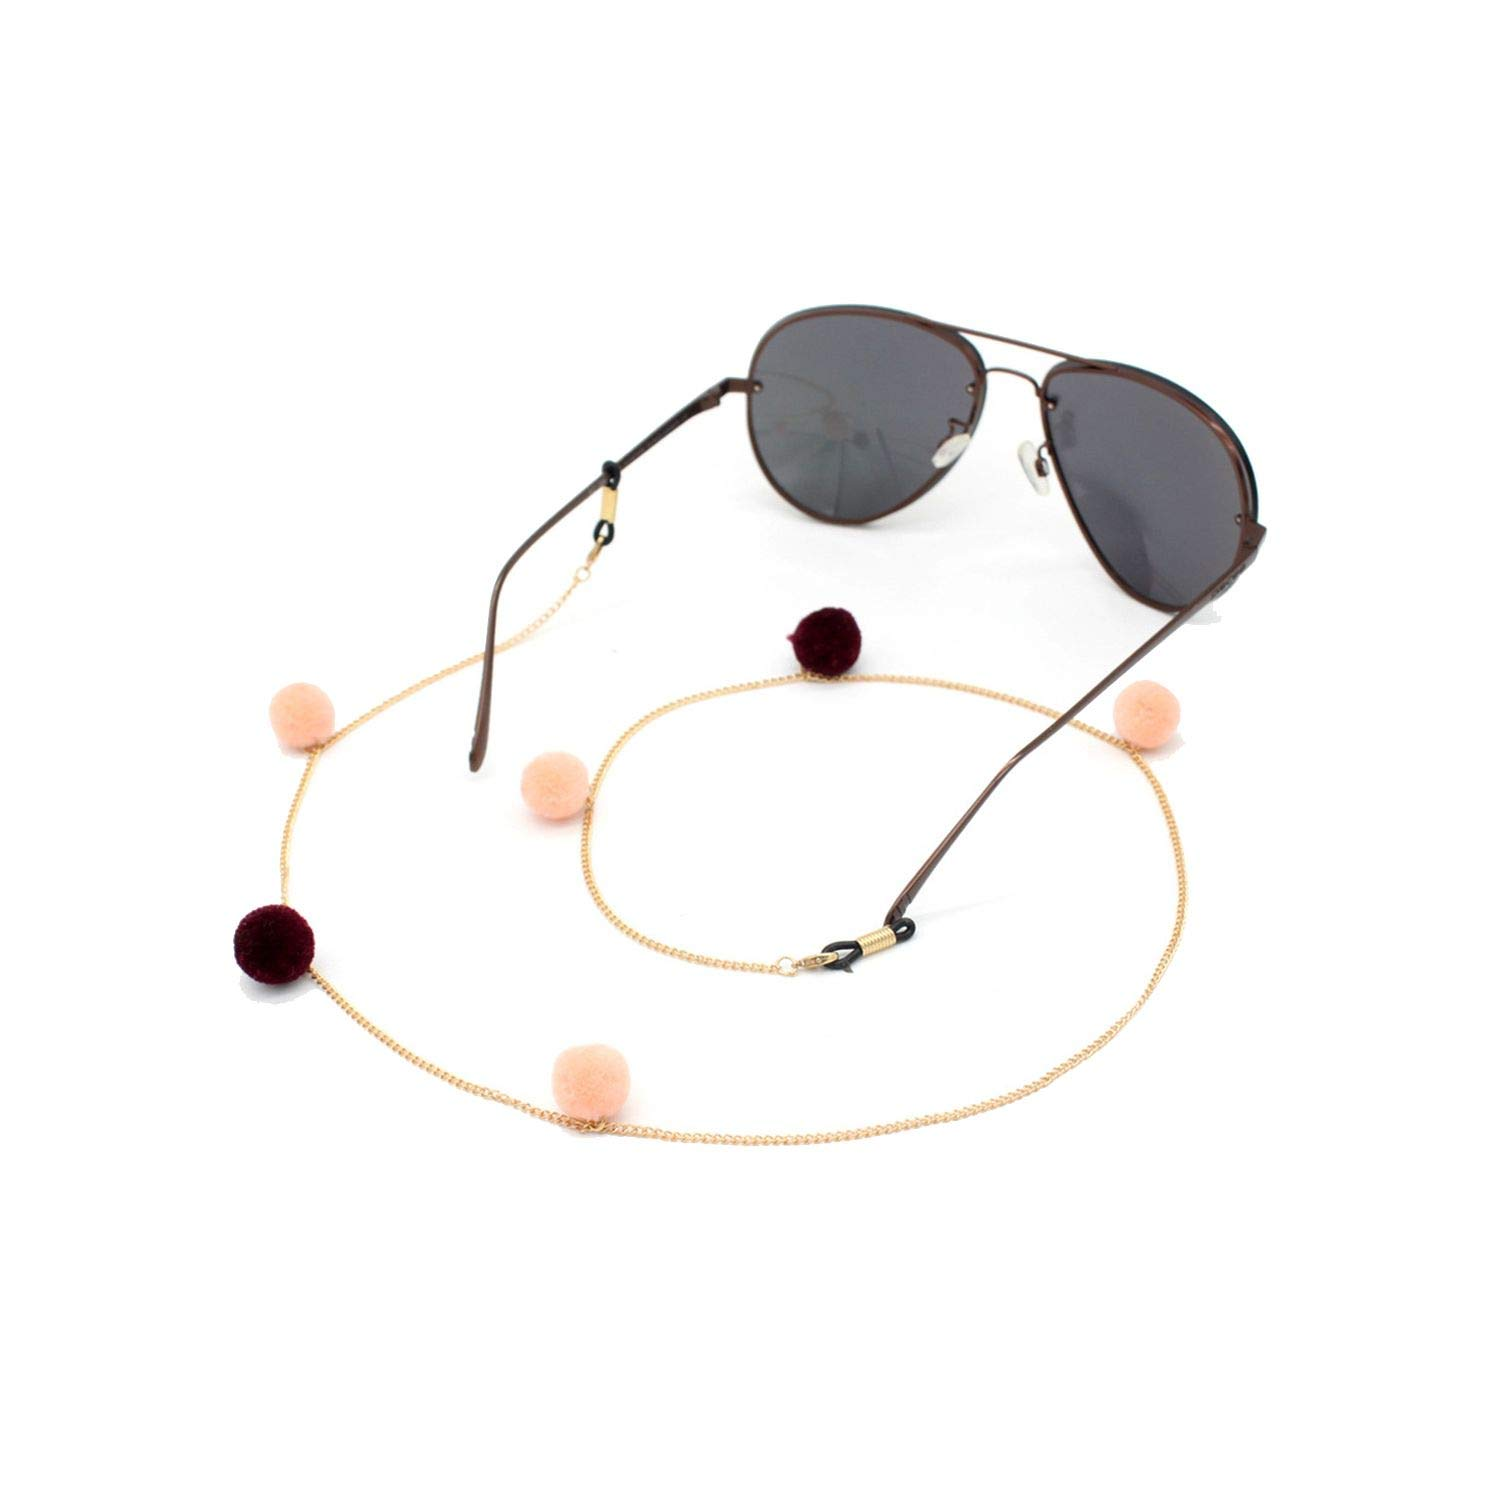 Womens Tassel Eyeglass Eyewears Pomball Sunglasses Reading Glasses Chain Cord Holder Neck Strap Rope by ONLY-FOR-ME-1